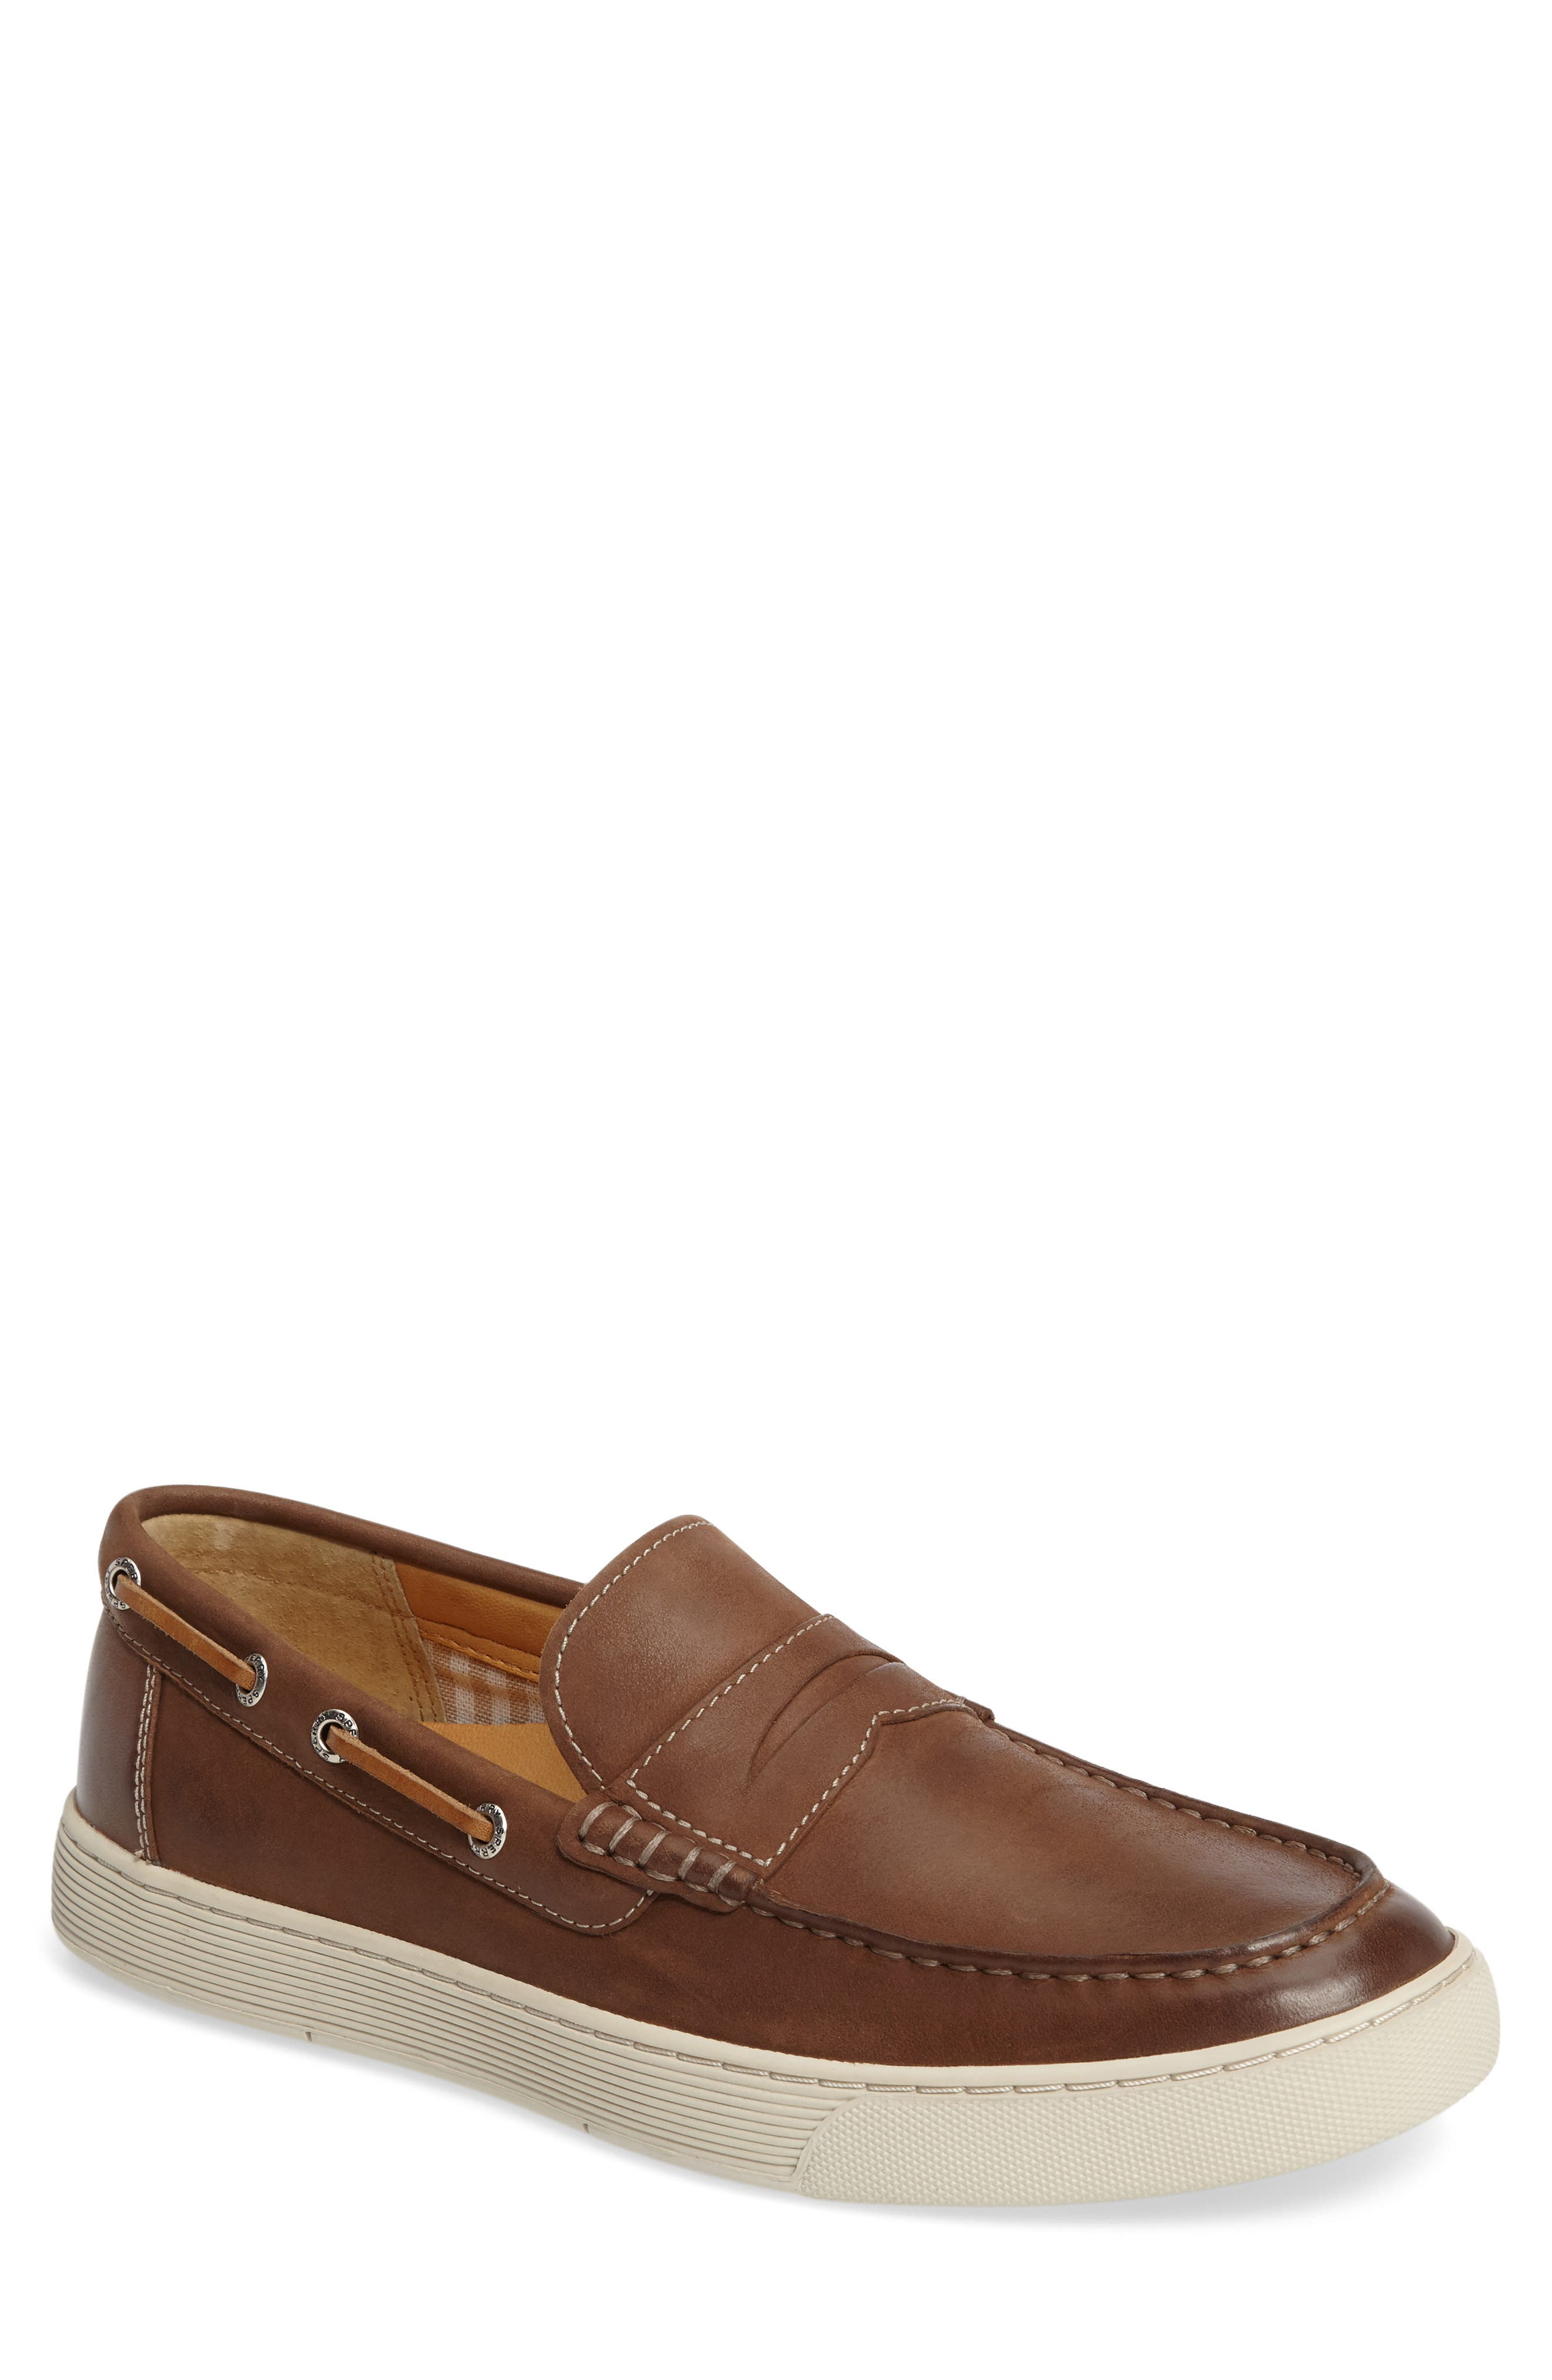 Alternate Image 1 Selected - Sperry Gold Cup Penny Loafer (Men)